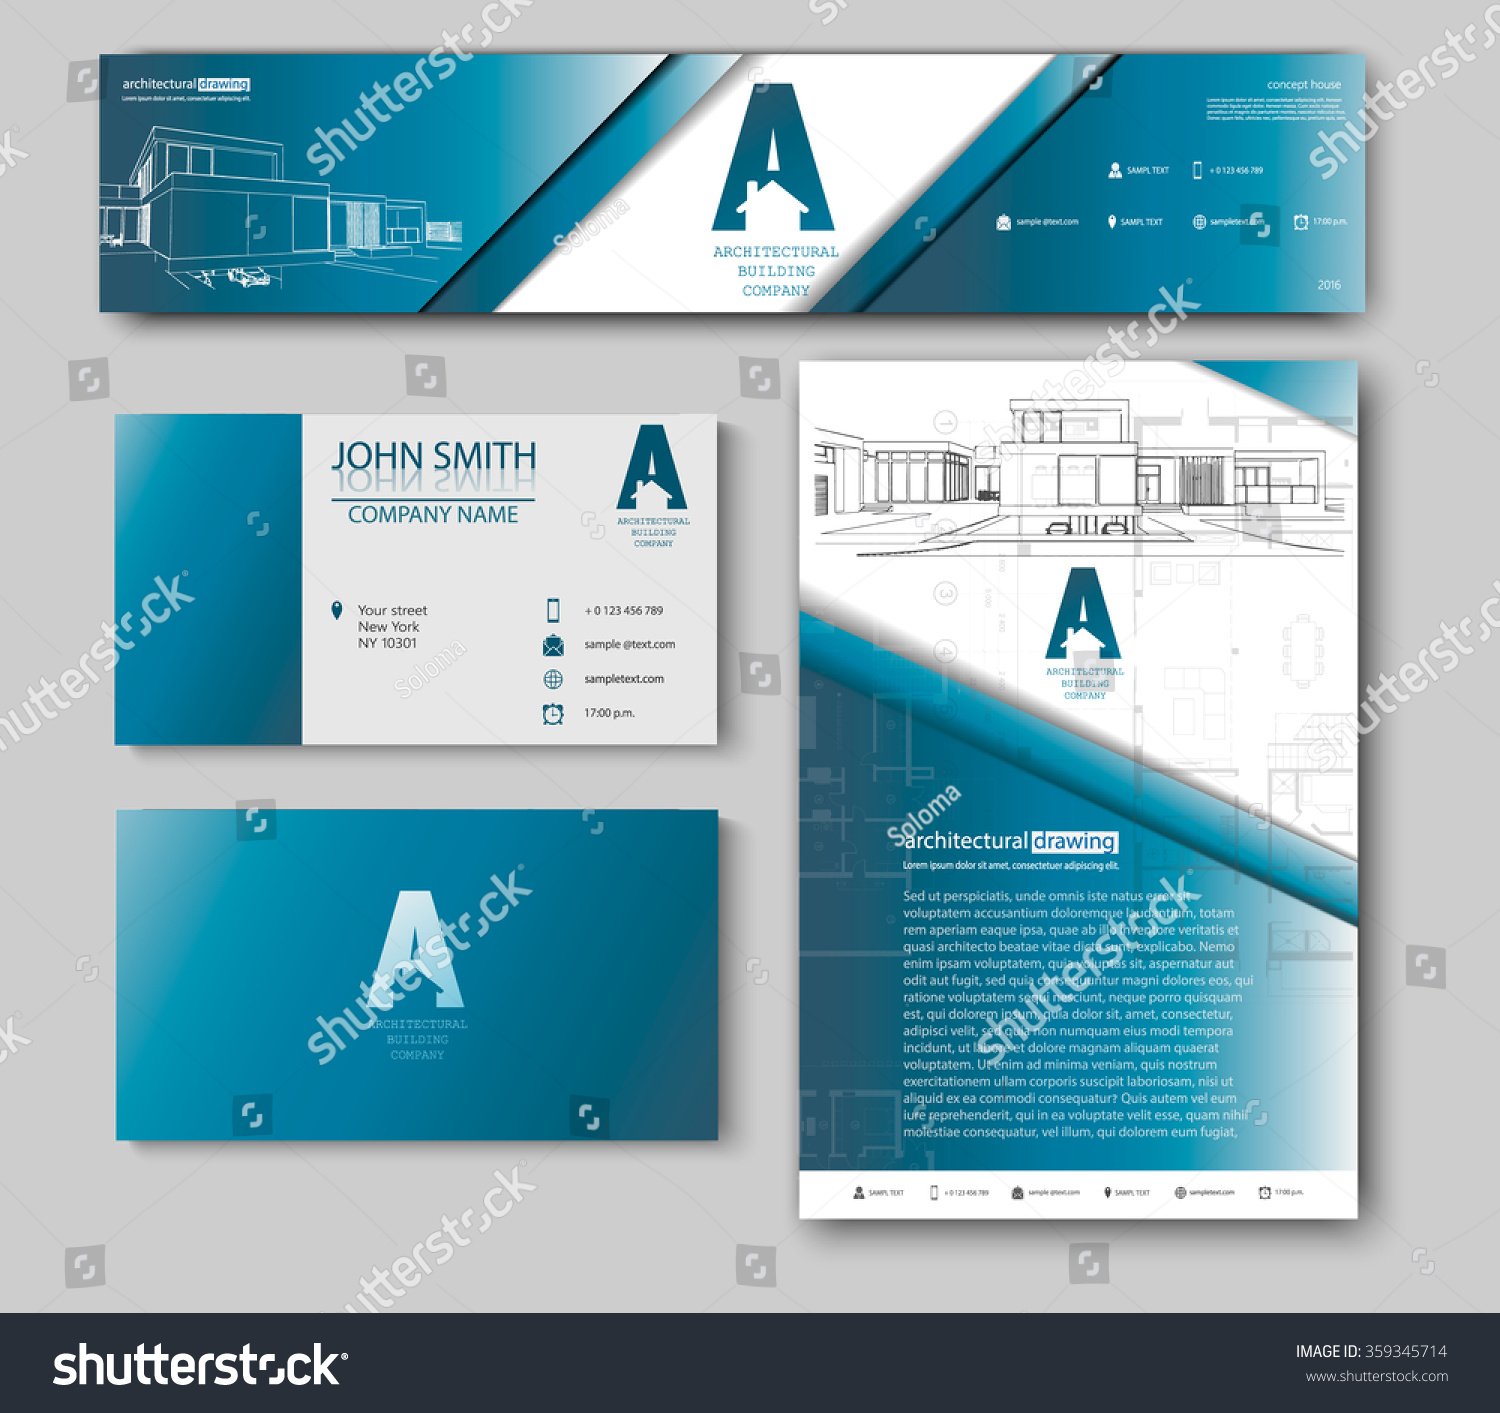 Business cards design blueprint sketch architectural stock vector business cards design with blueprint sketch for architectural company architectural background for architectural project malvernweather Image collections